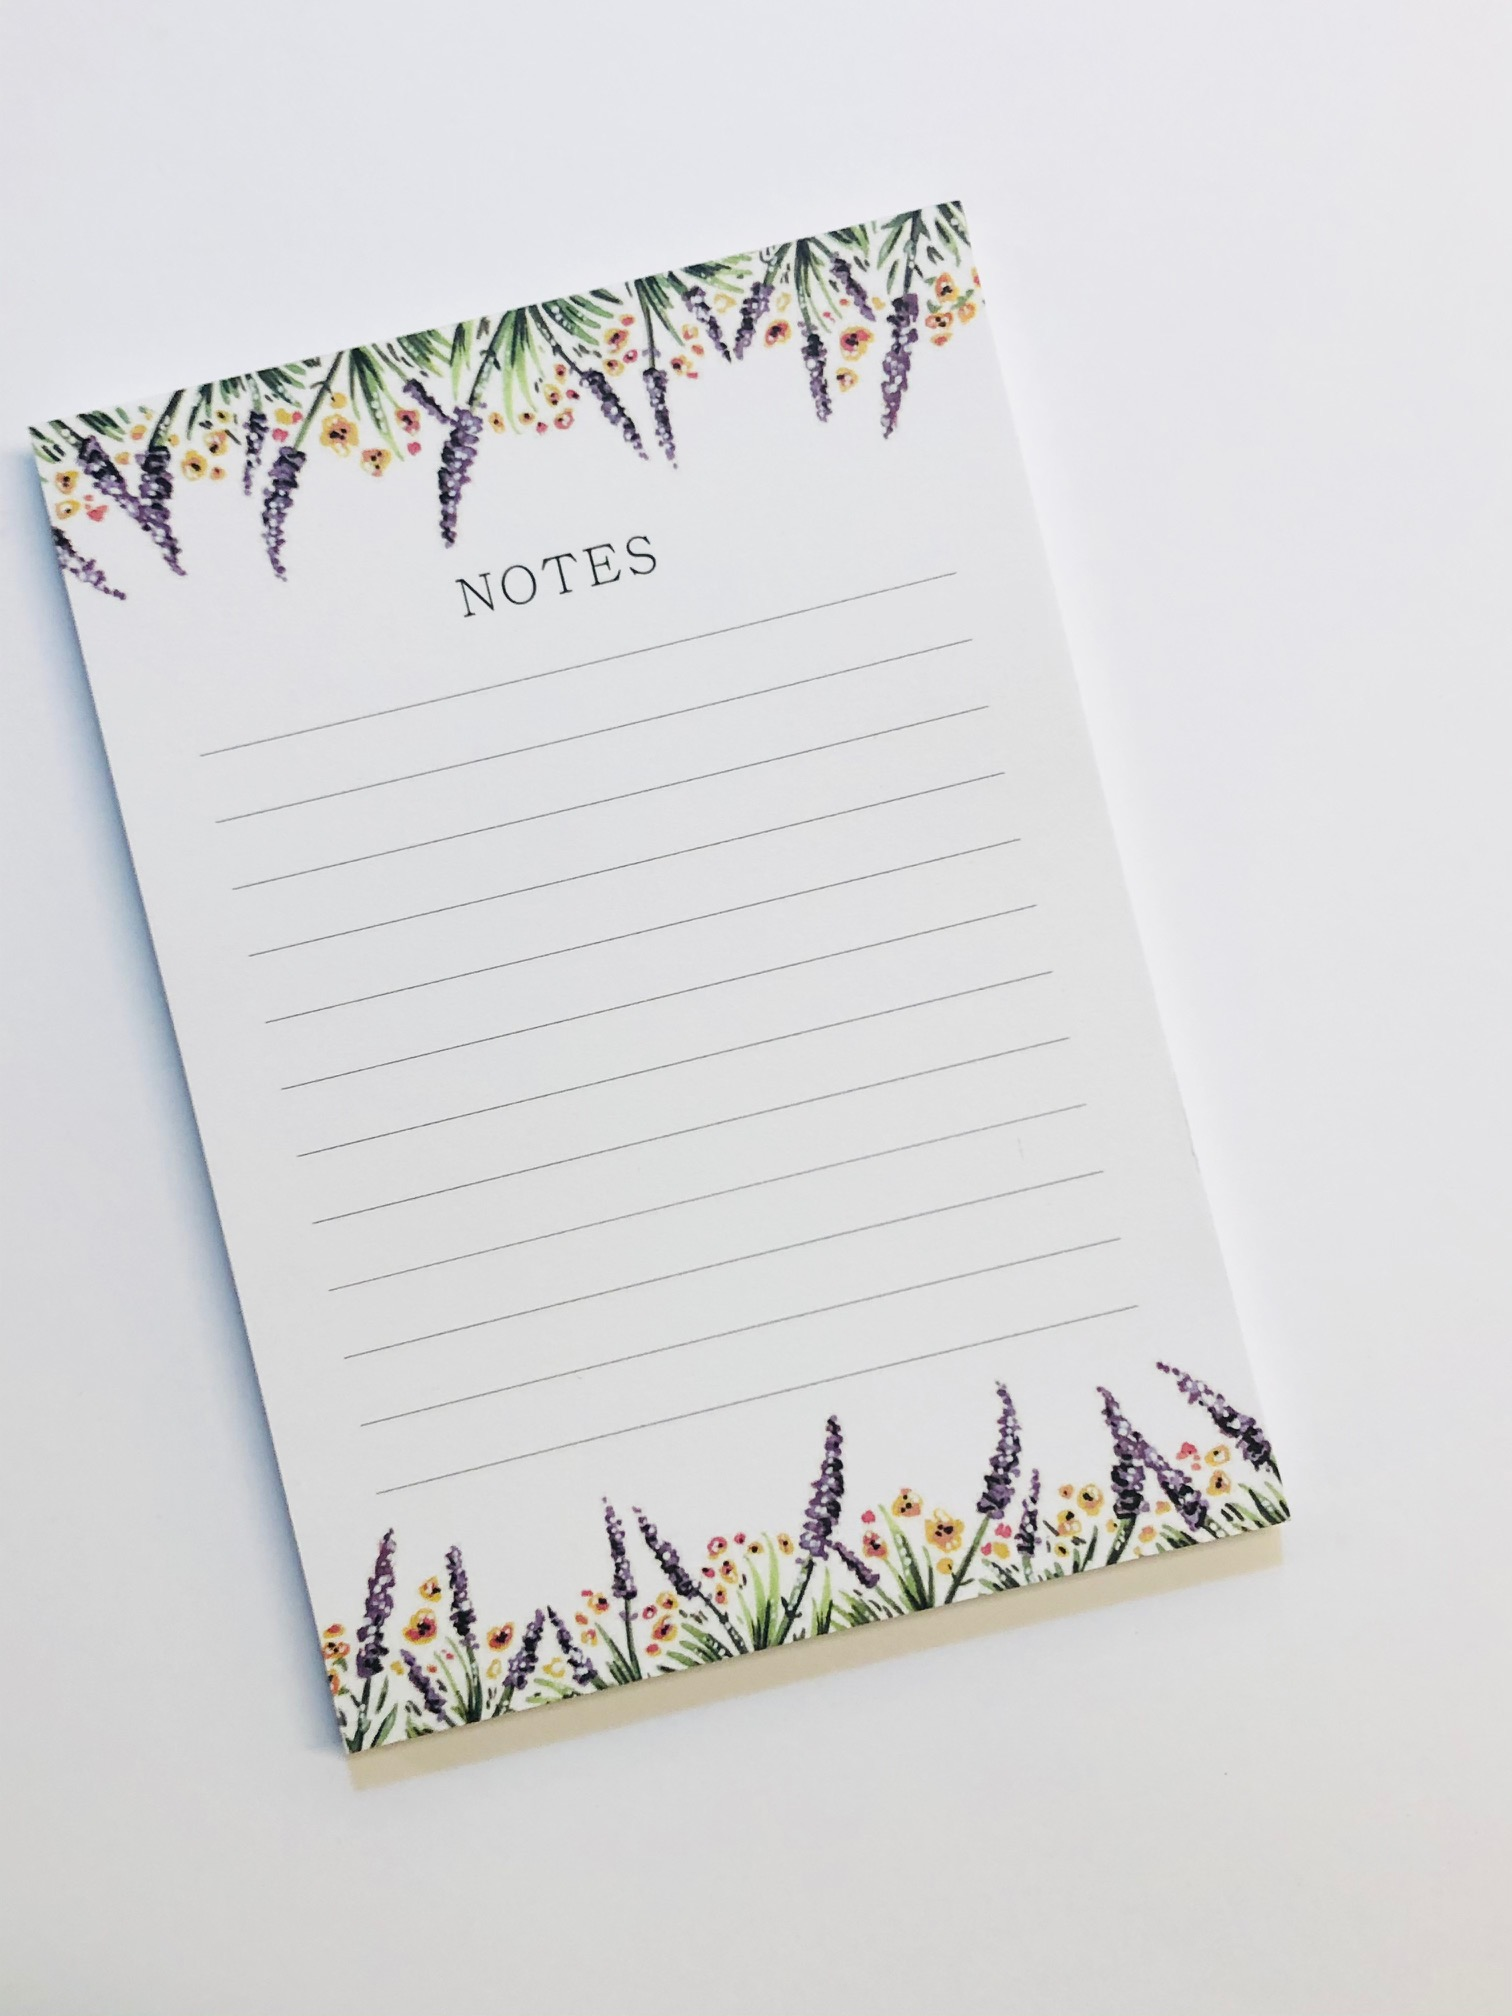 Illustrated Notes Pad by Amy Harwood